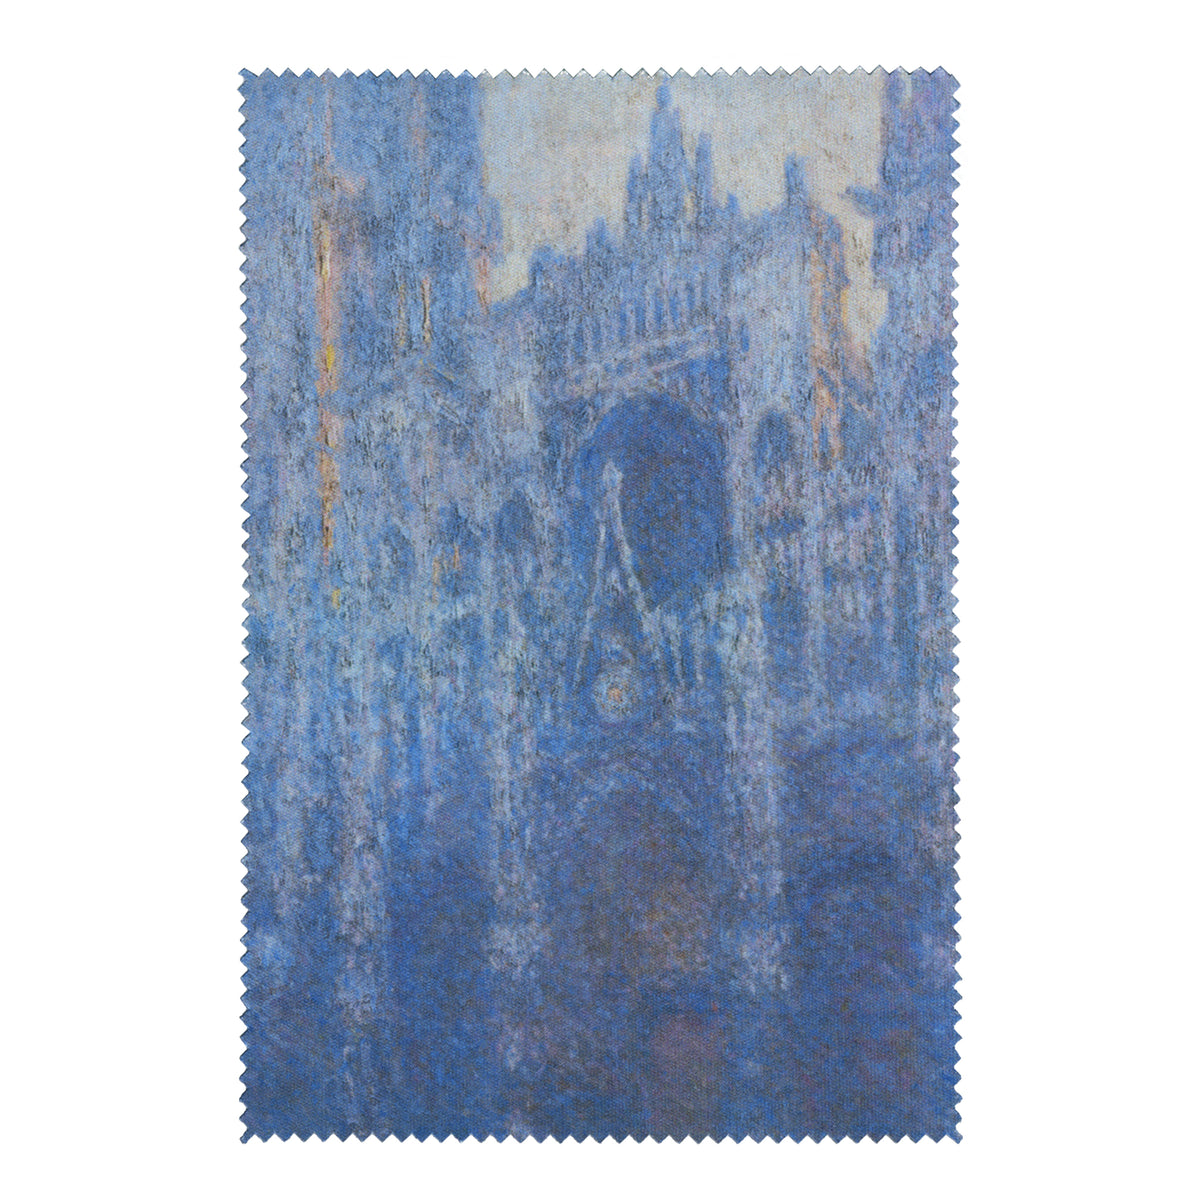 Monet-The Portal of Rouen Cathedral in Morning Light-Lens Cloth + Postcard | Getty Store